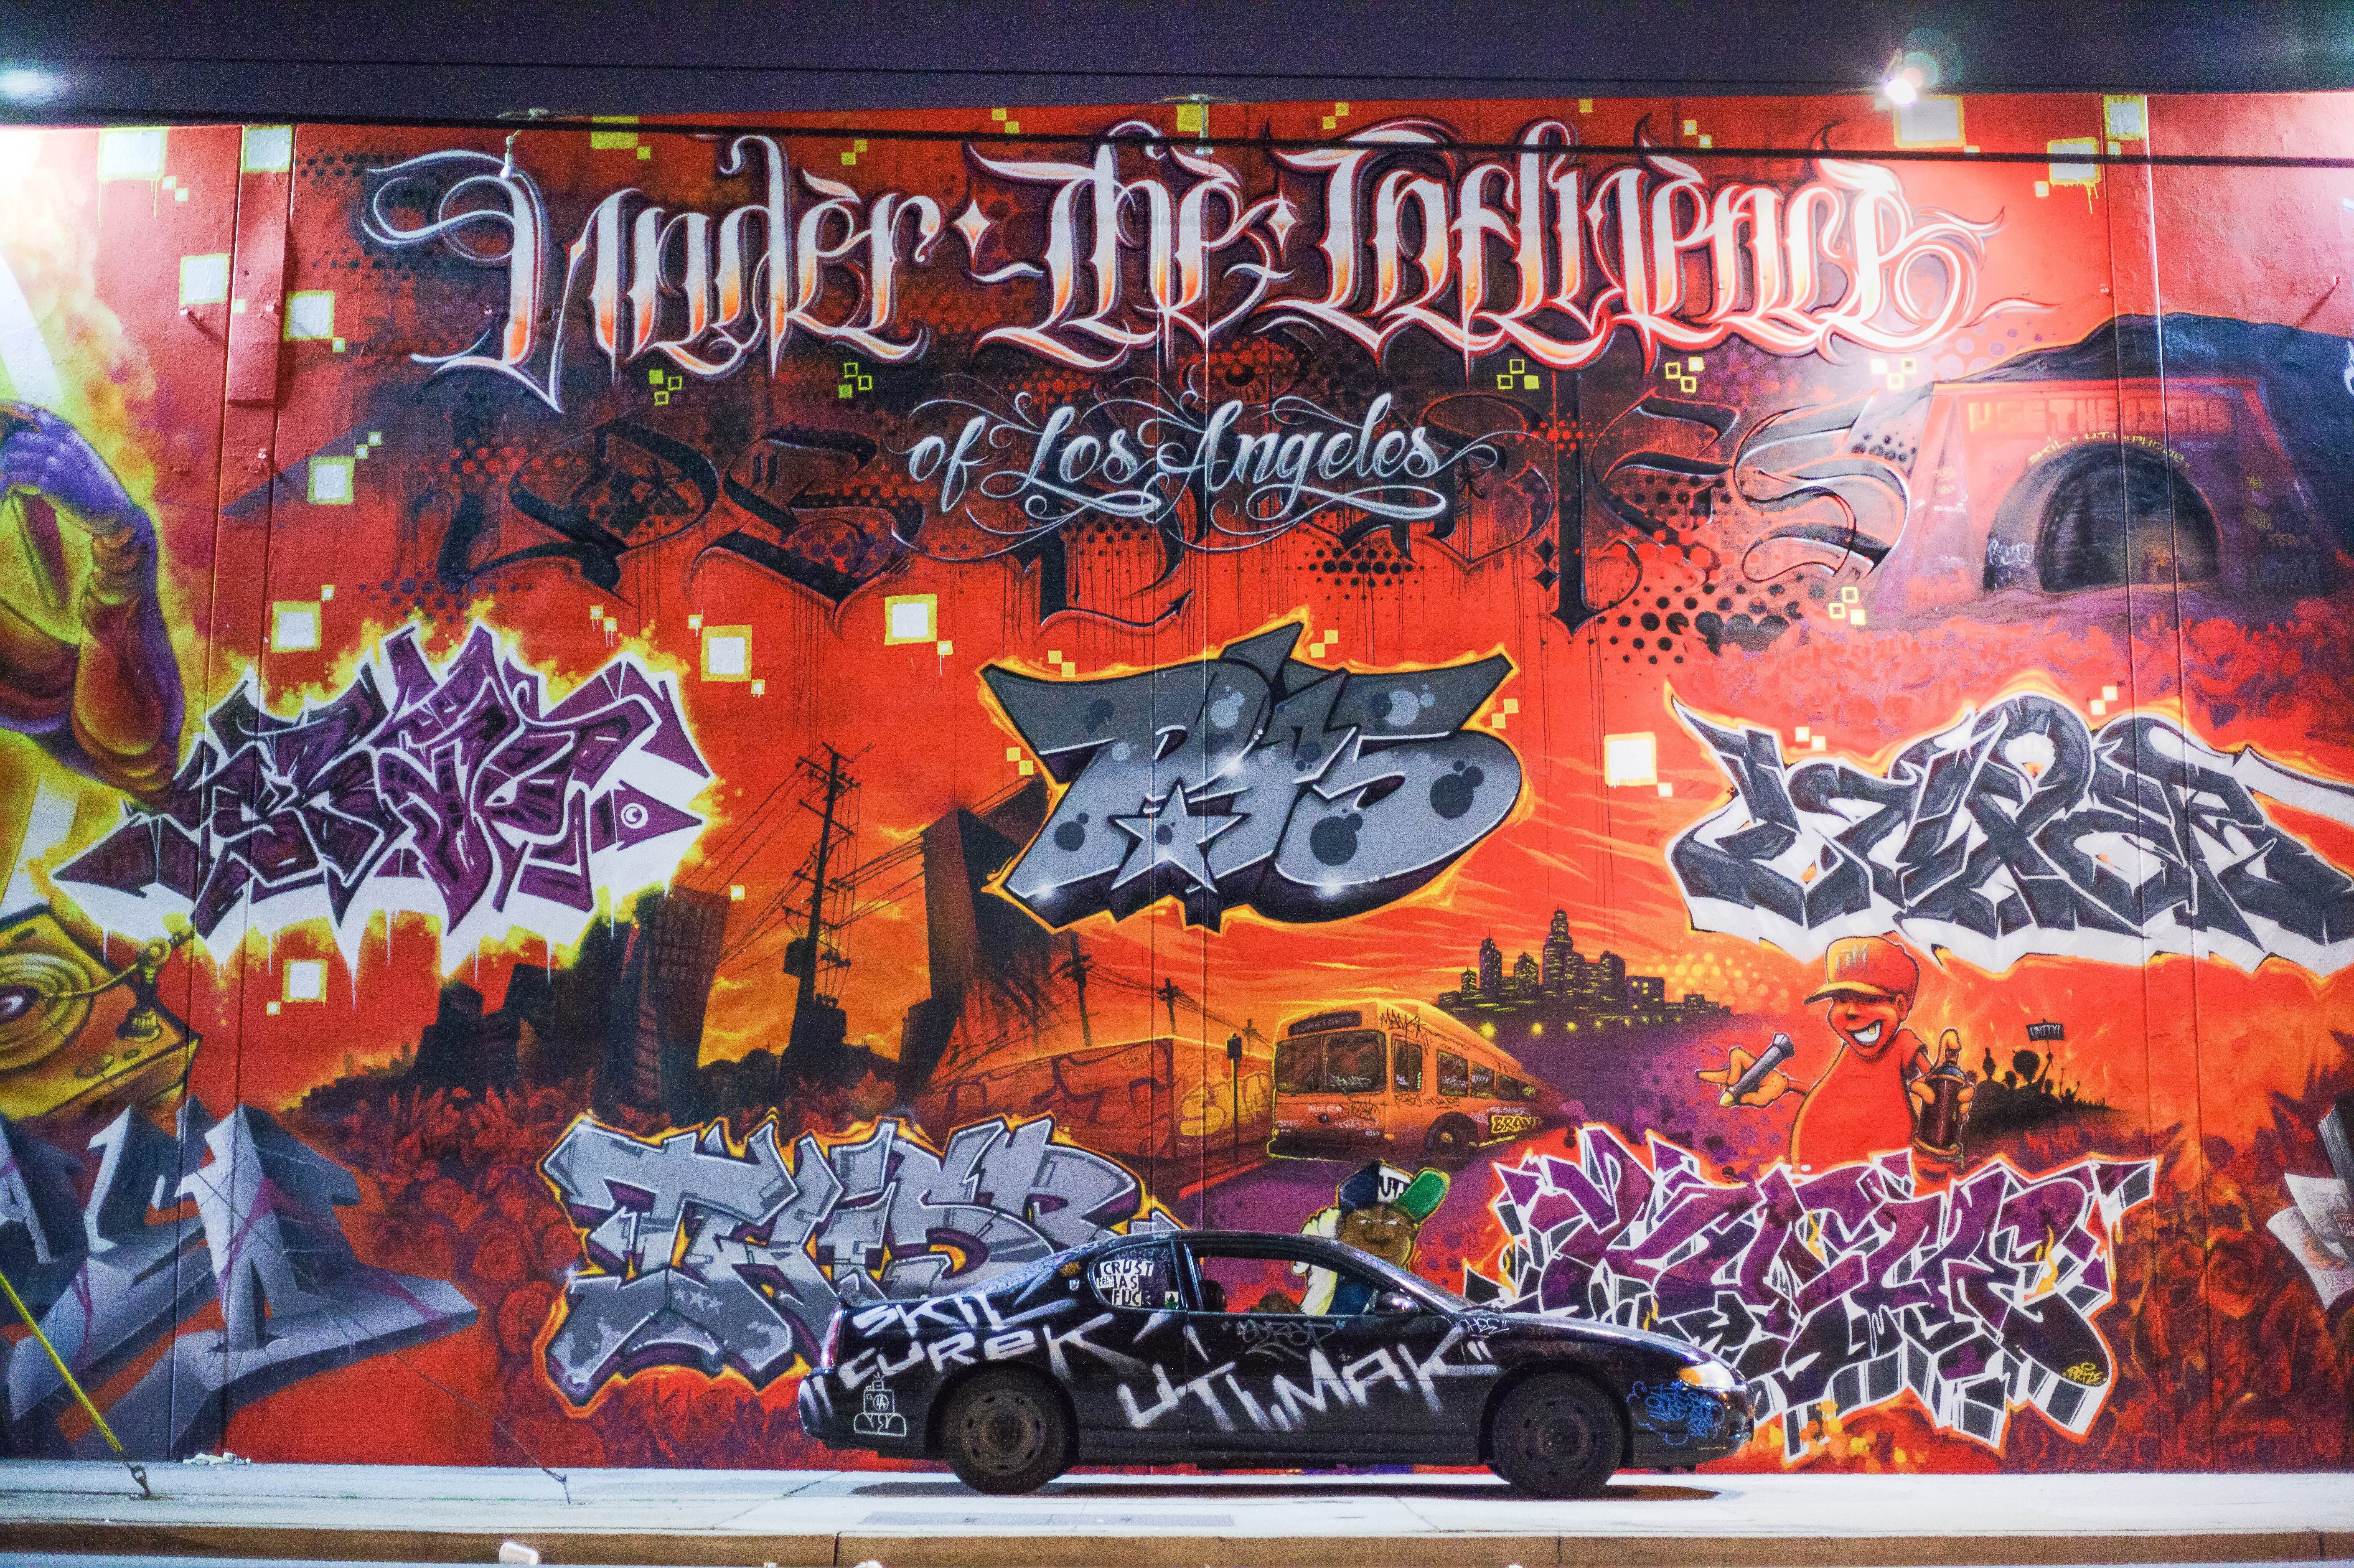 Wr la has gone through some phases in graffiti from mobbing buses the la river belmont tunnel even tag banging which seemed like a very dangerous and